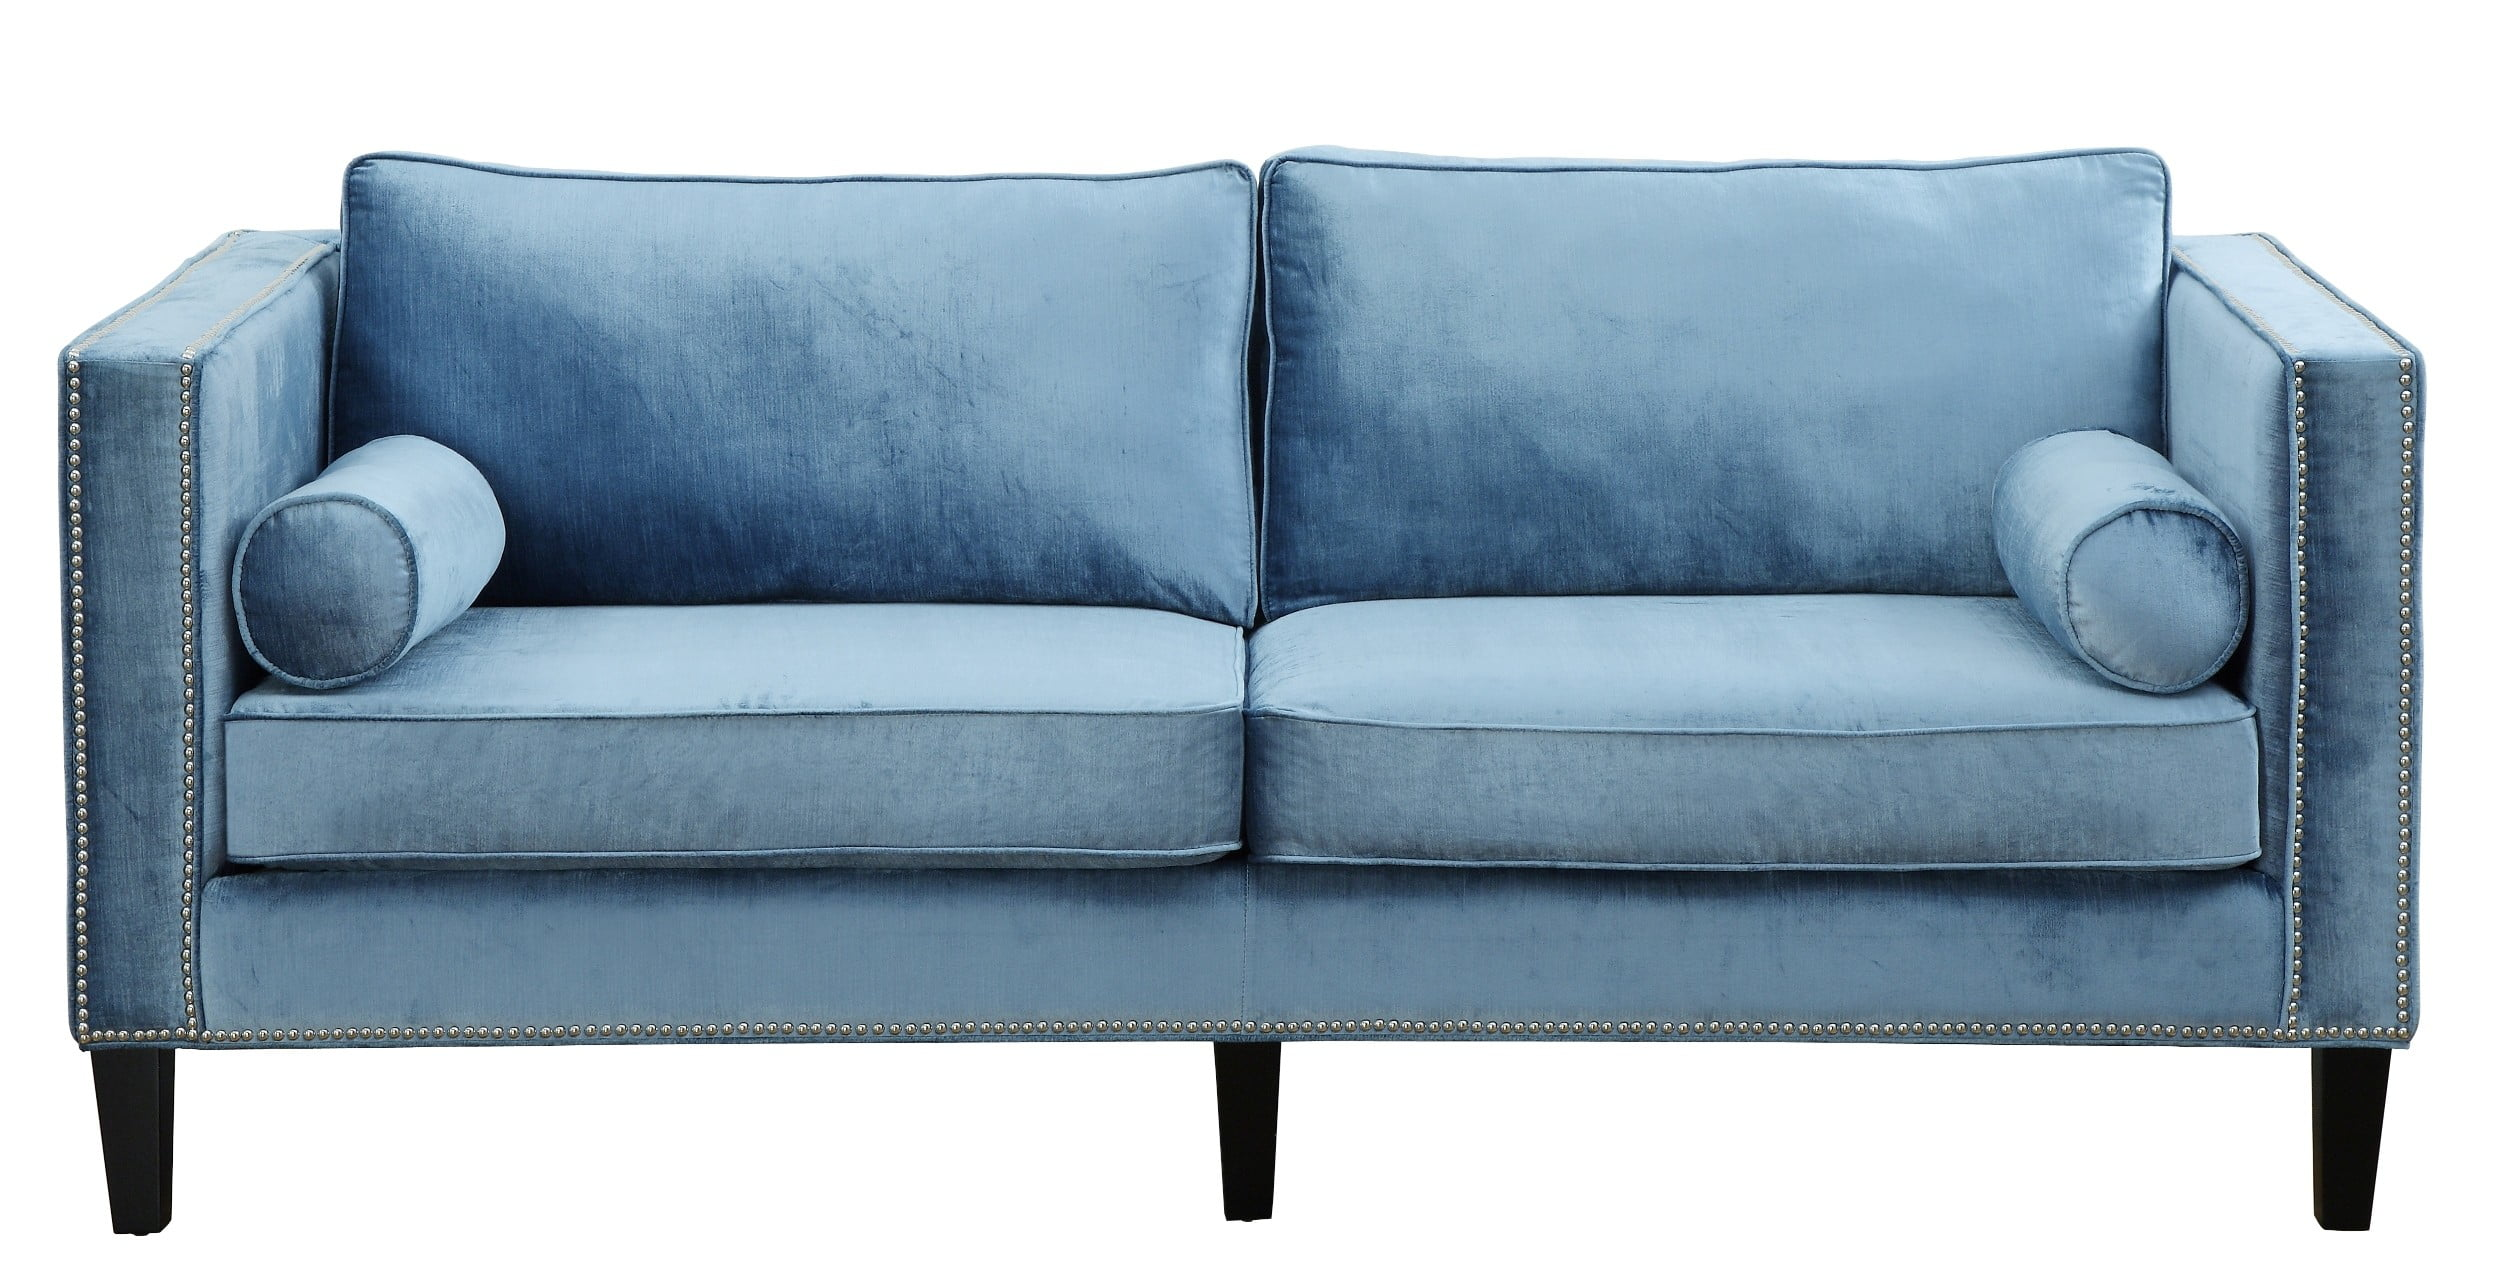 Cooper Blue Velvet Sofa Tov S18 Tov Furniture